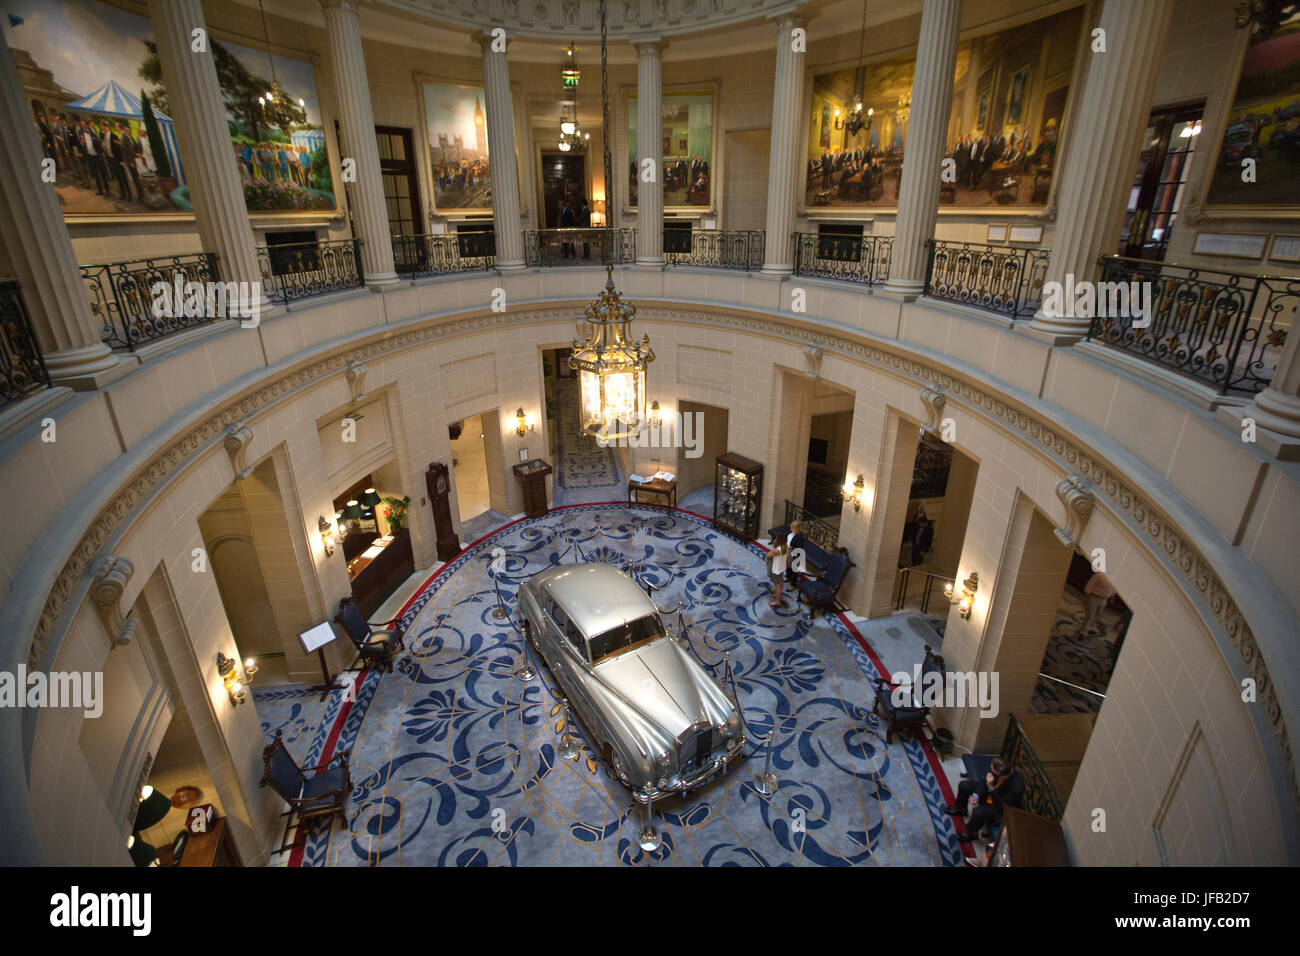 The Royal Automobile Club, British private members' club with over 100 years of tradition located on Pall Mall, - Stock Image